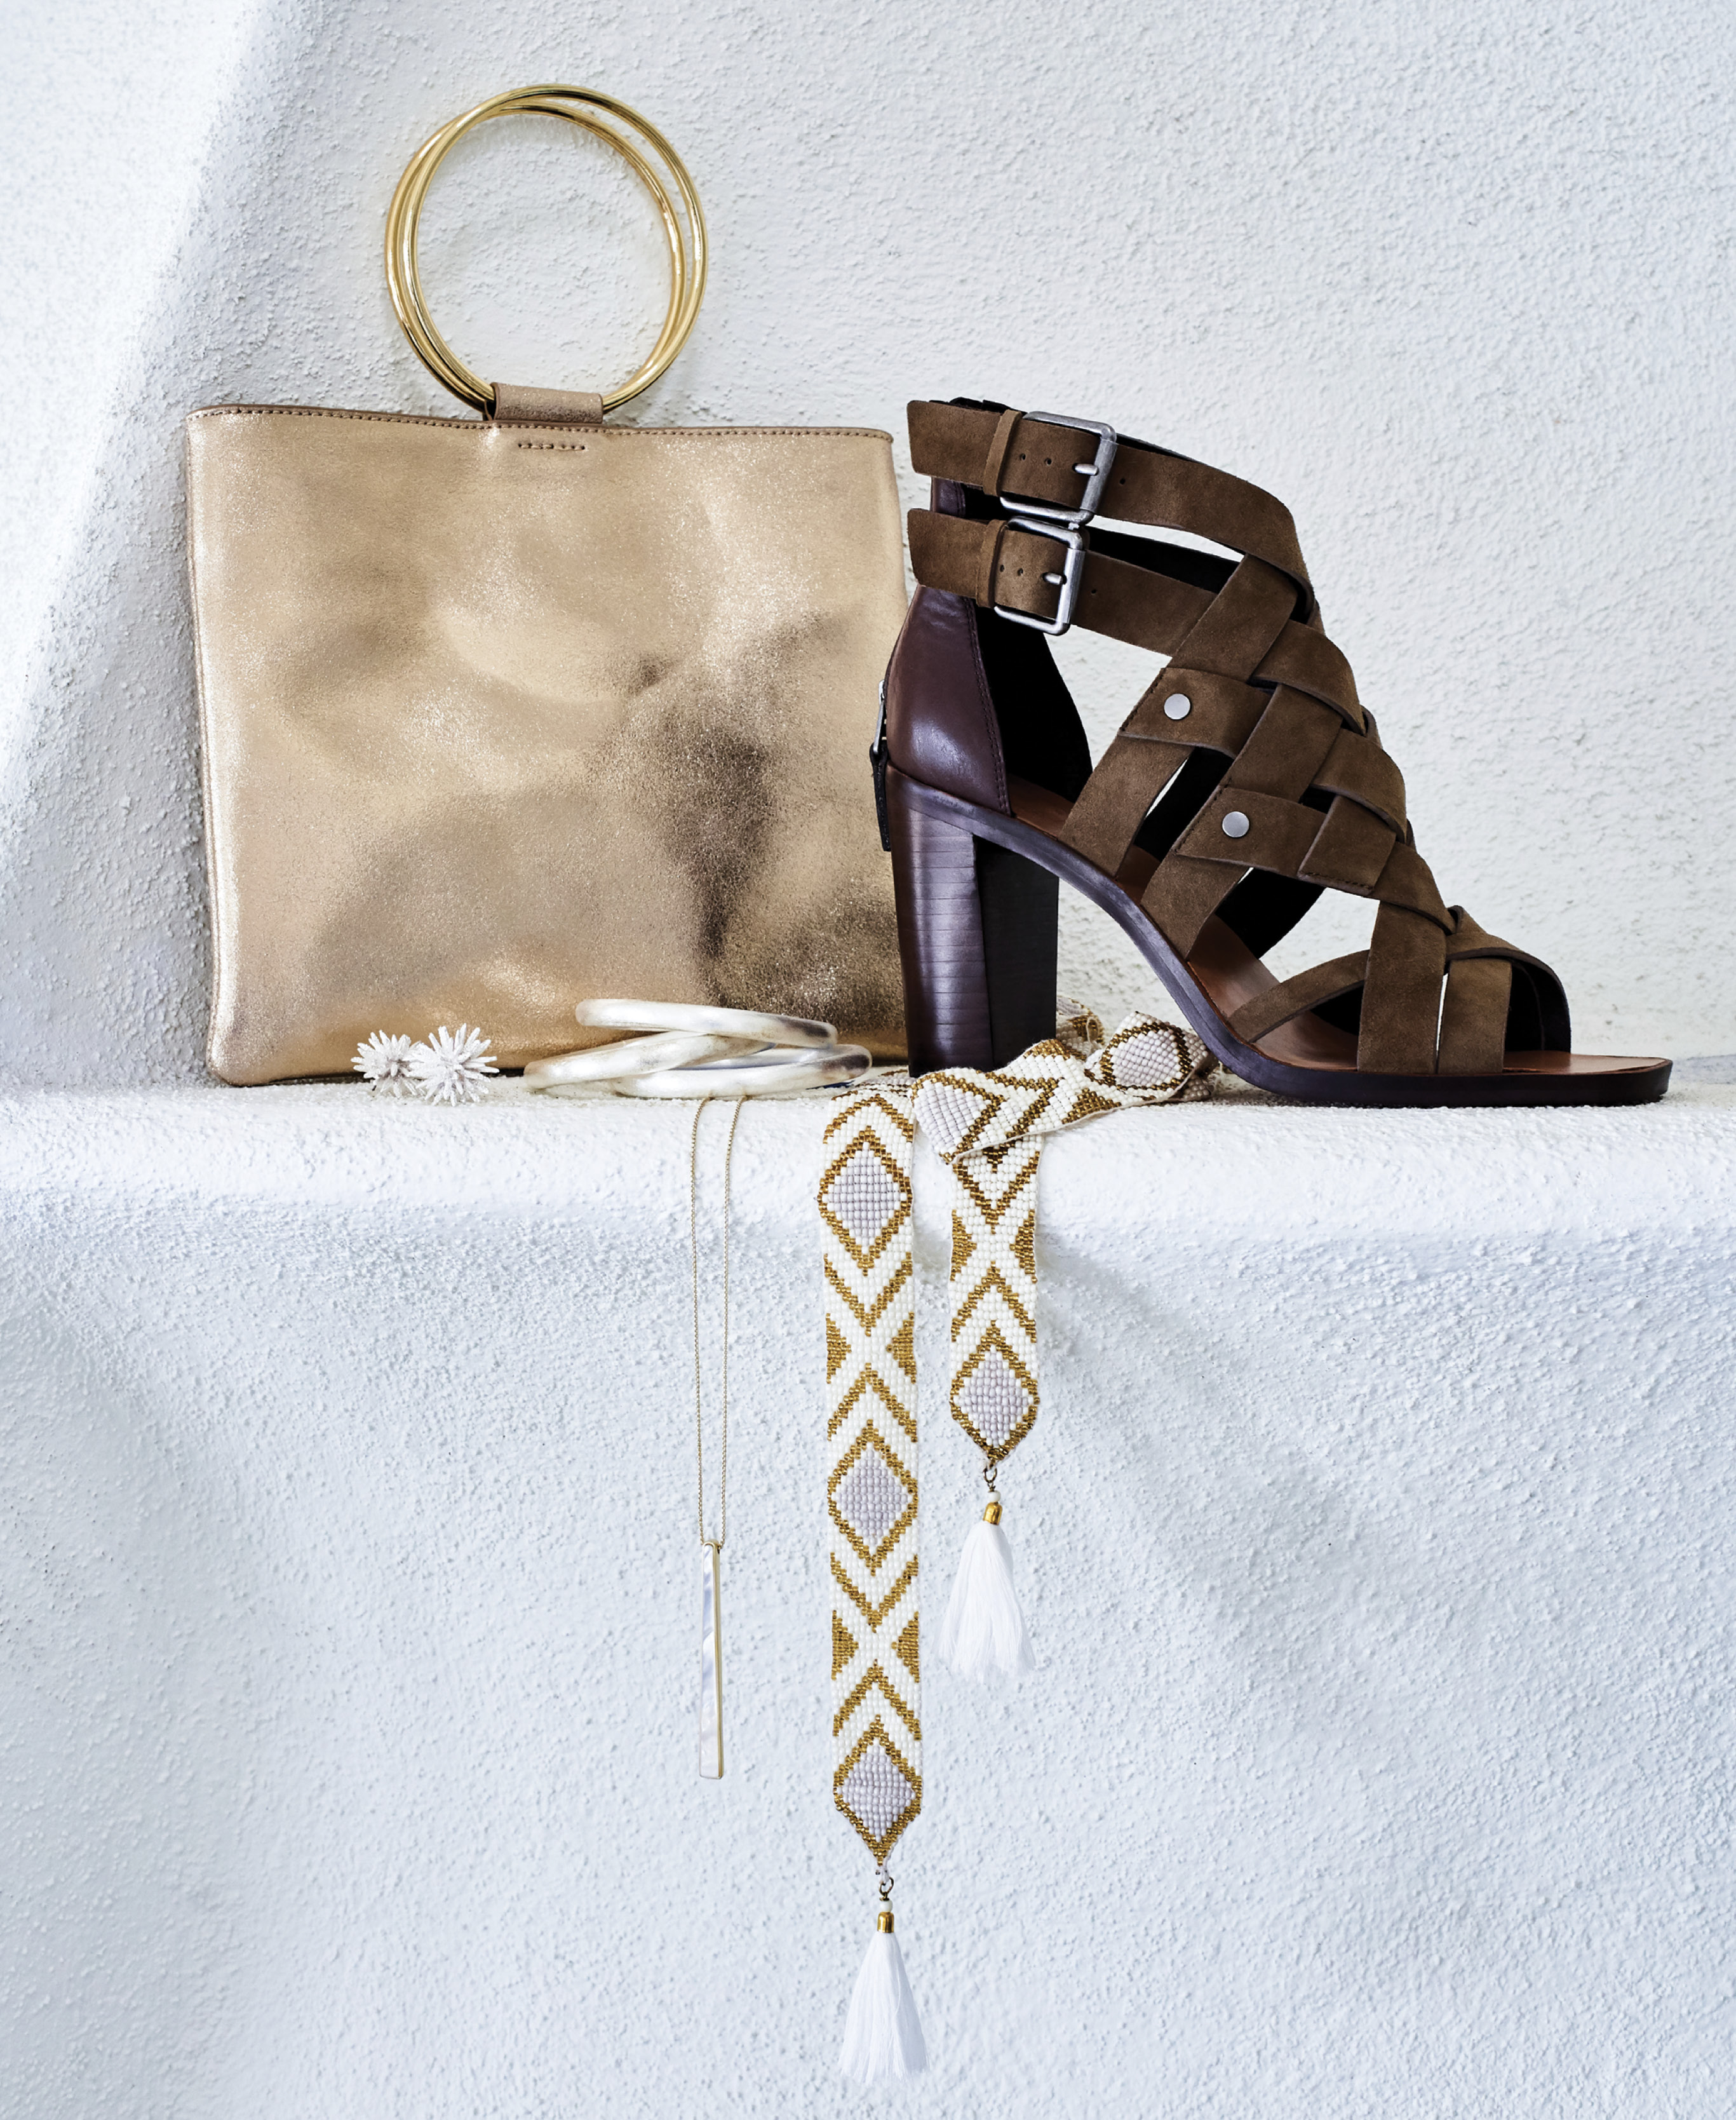 "FINISHING TOUCHES - Thacker ""Le Pouch"" bag in ""gold,"" $148 at Maris DeHart; Dolce Vita ""Noree"" suede heels in ""olive green,"" $170 at Shoes on King; Gretchen Scott woven beaded belt, $55 at Gretchen Scott; Betty Carre brushed silver bangles, $126 for set of 3 at Out of Hand; Kendra Scott ""Baleigh"" pendant necklace in ""ivory mother of pearl,"" $95 at Kendra Scott; Karine Sultan ""Fiji Reef"" stud earrings, $48 at Croghan's Jewel Box"